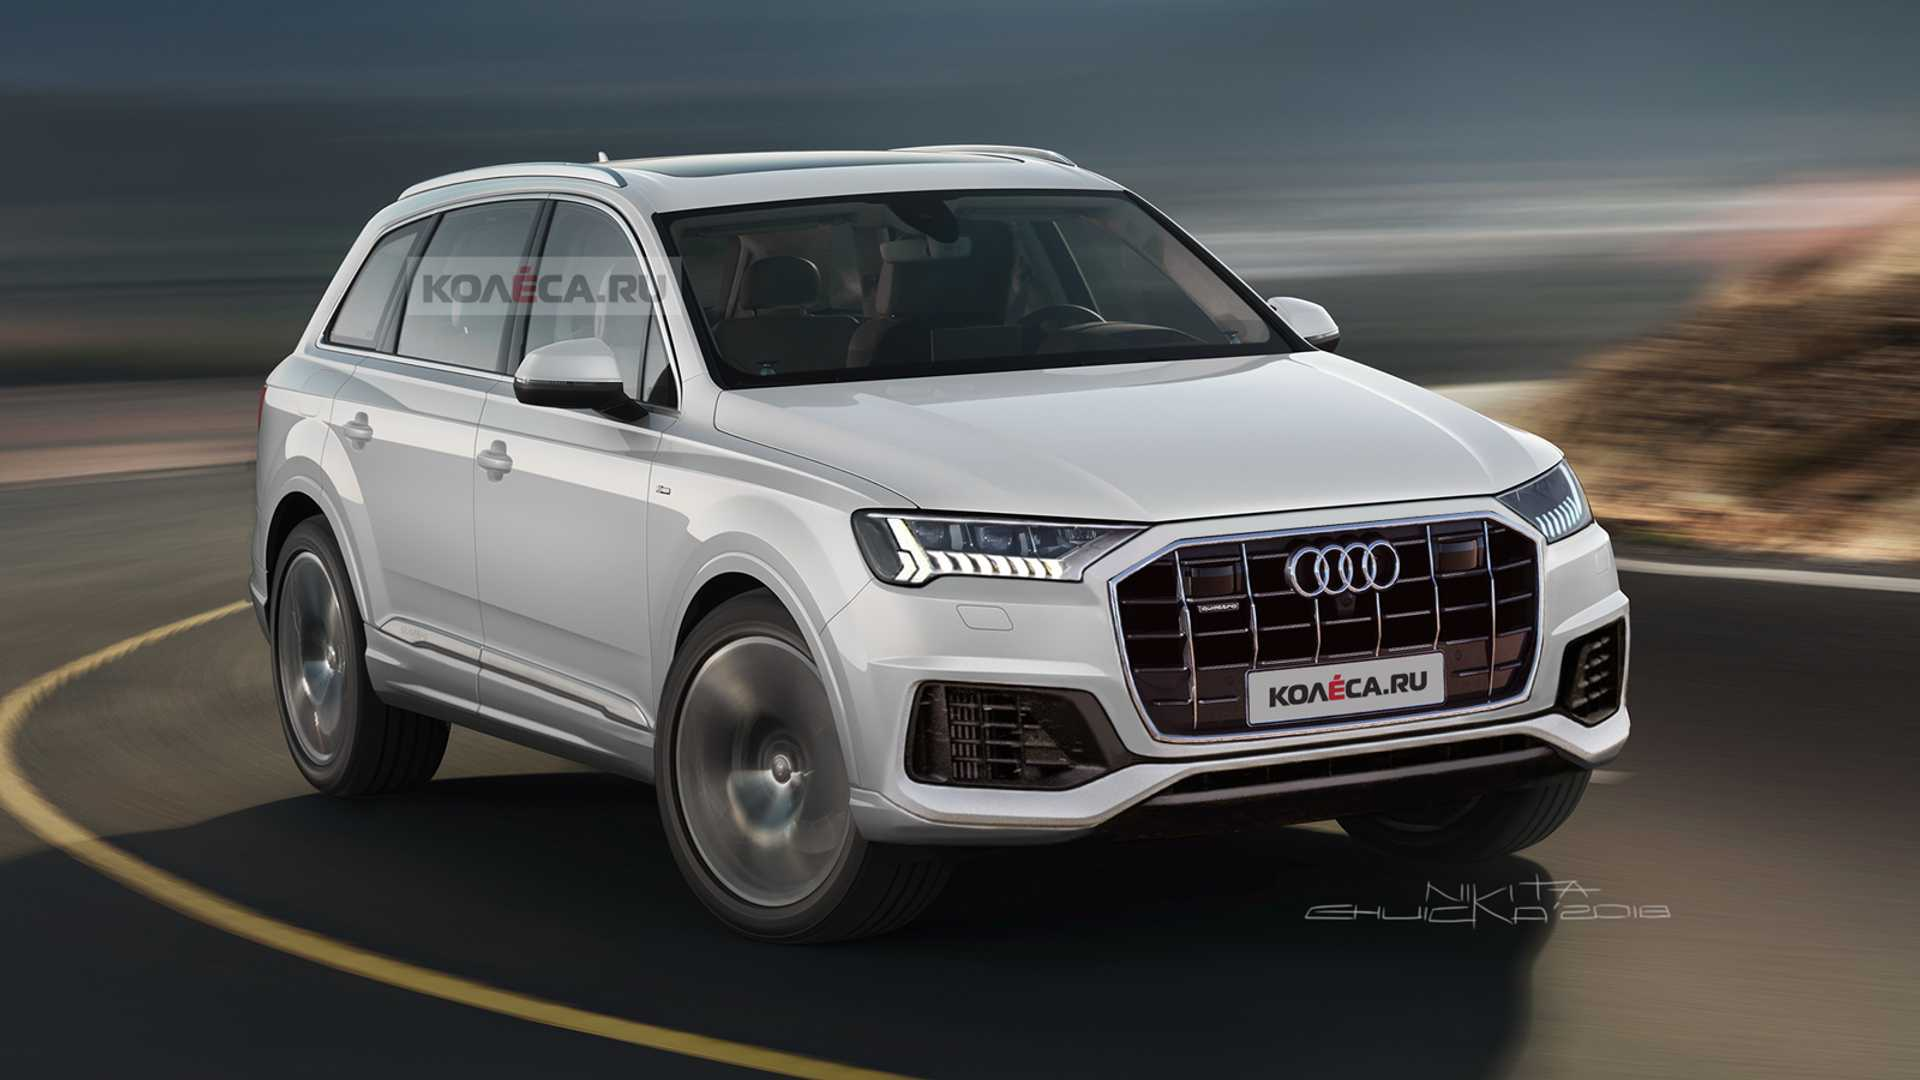 61 The Best Audi Pickup 2020 History